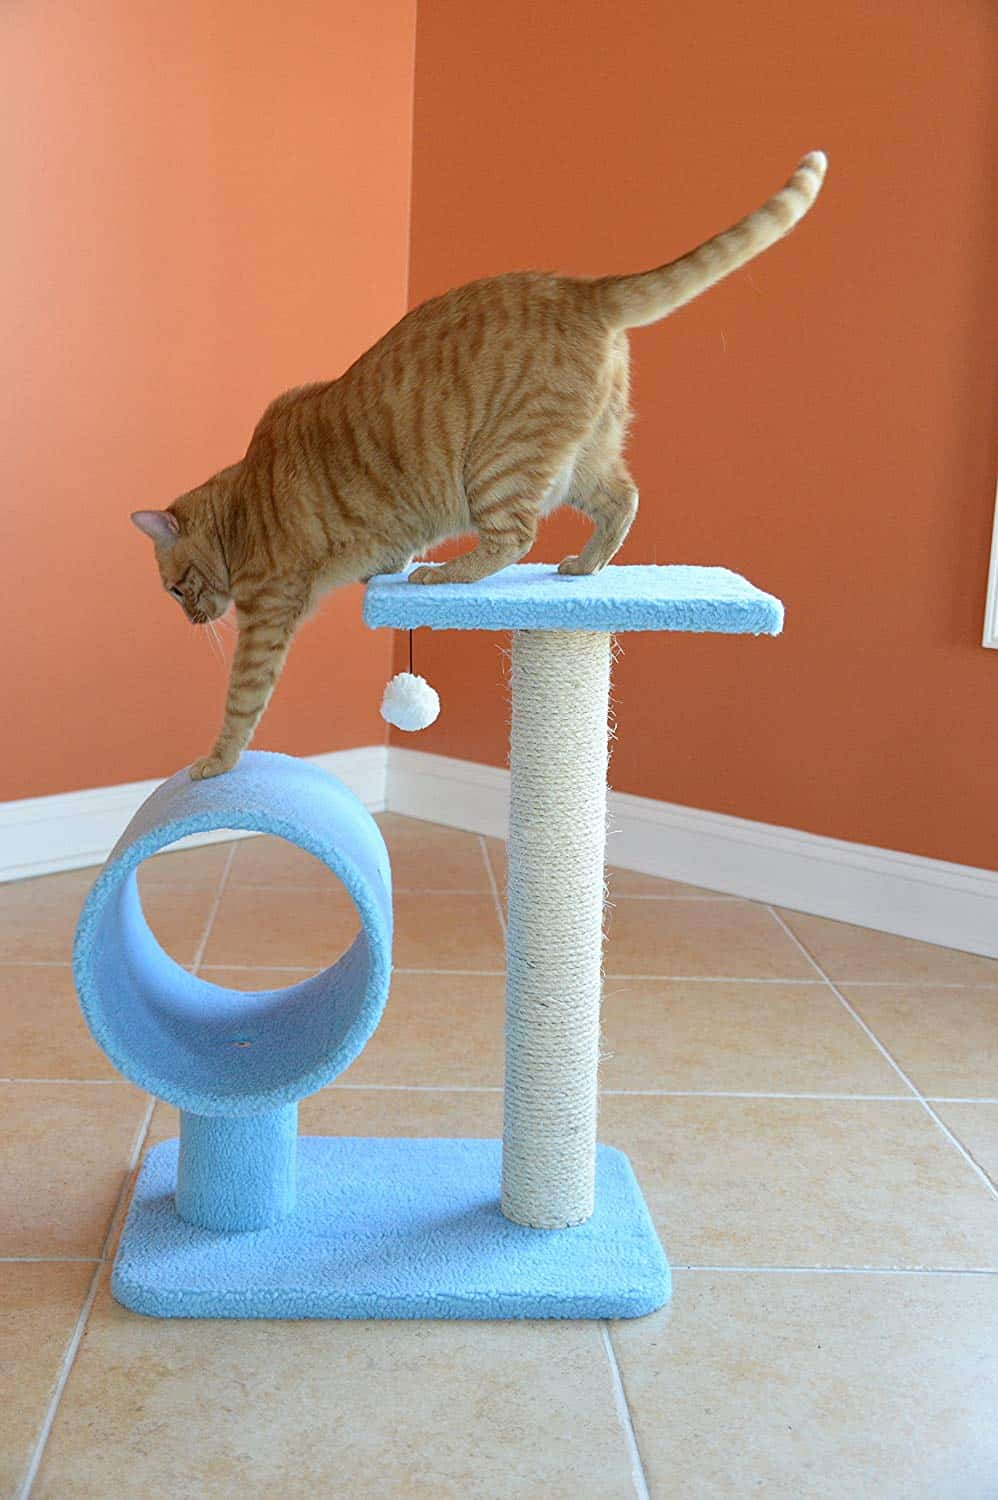 Best Compact Cat Tree: Armarkat B2501 Cat Tree